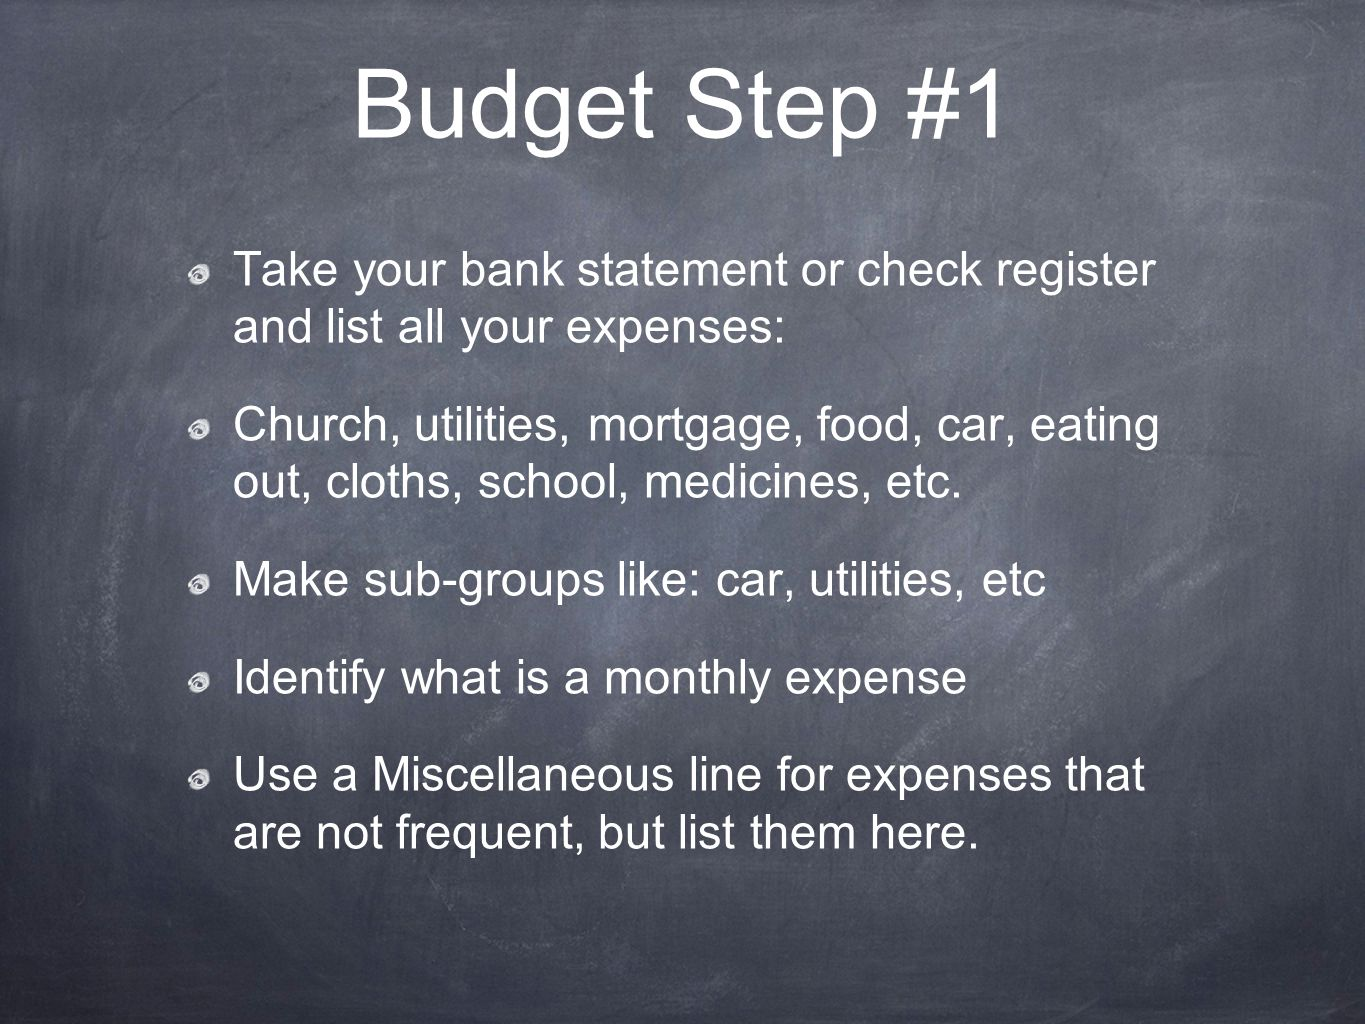 Budget Step #1 Take your bank statement or check register and list all your expenses: Church, utilities, mortgage, food, car, eating out, cloths, school, medicines, etc.